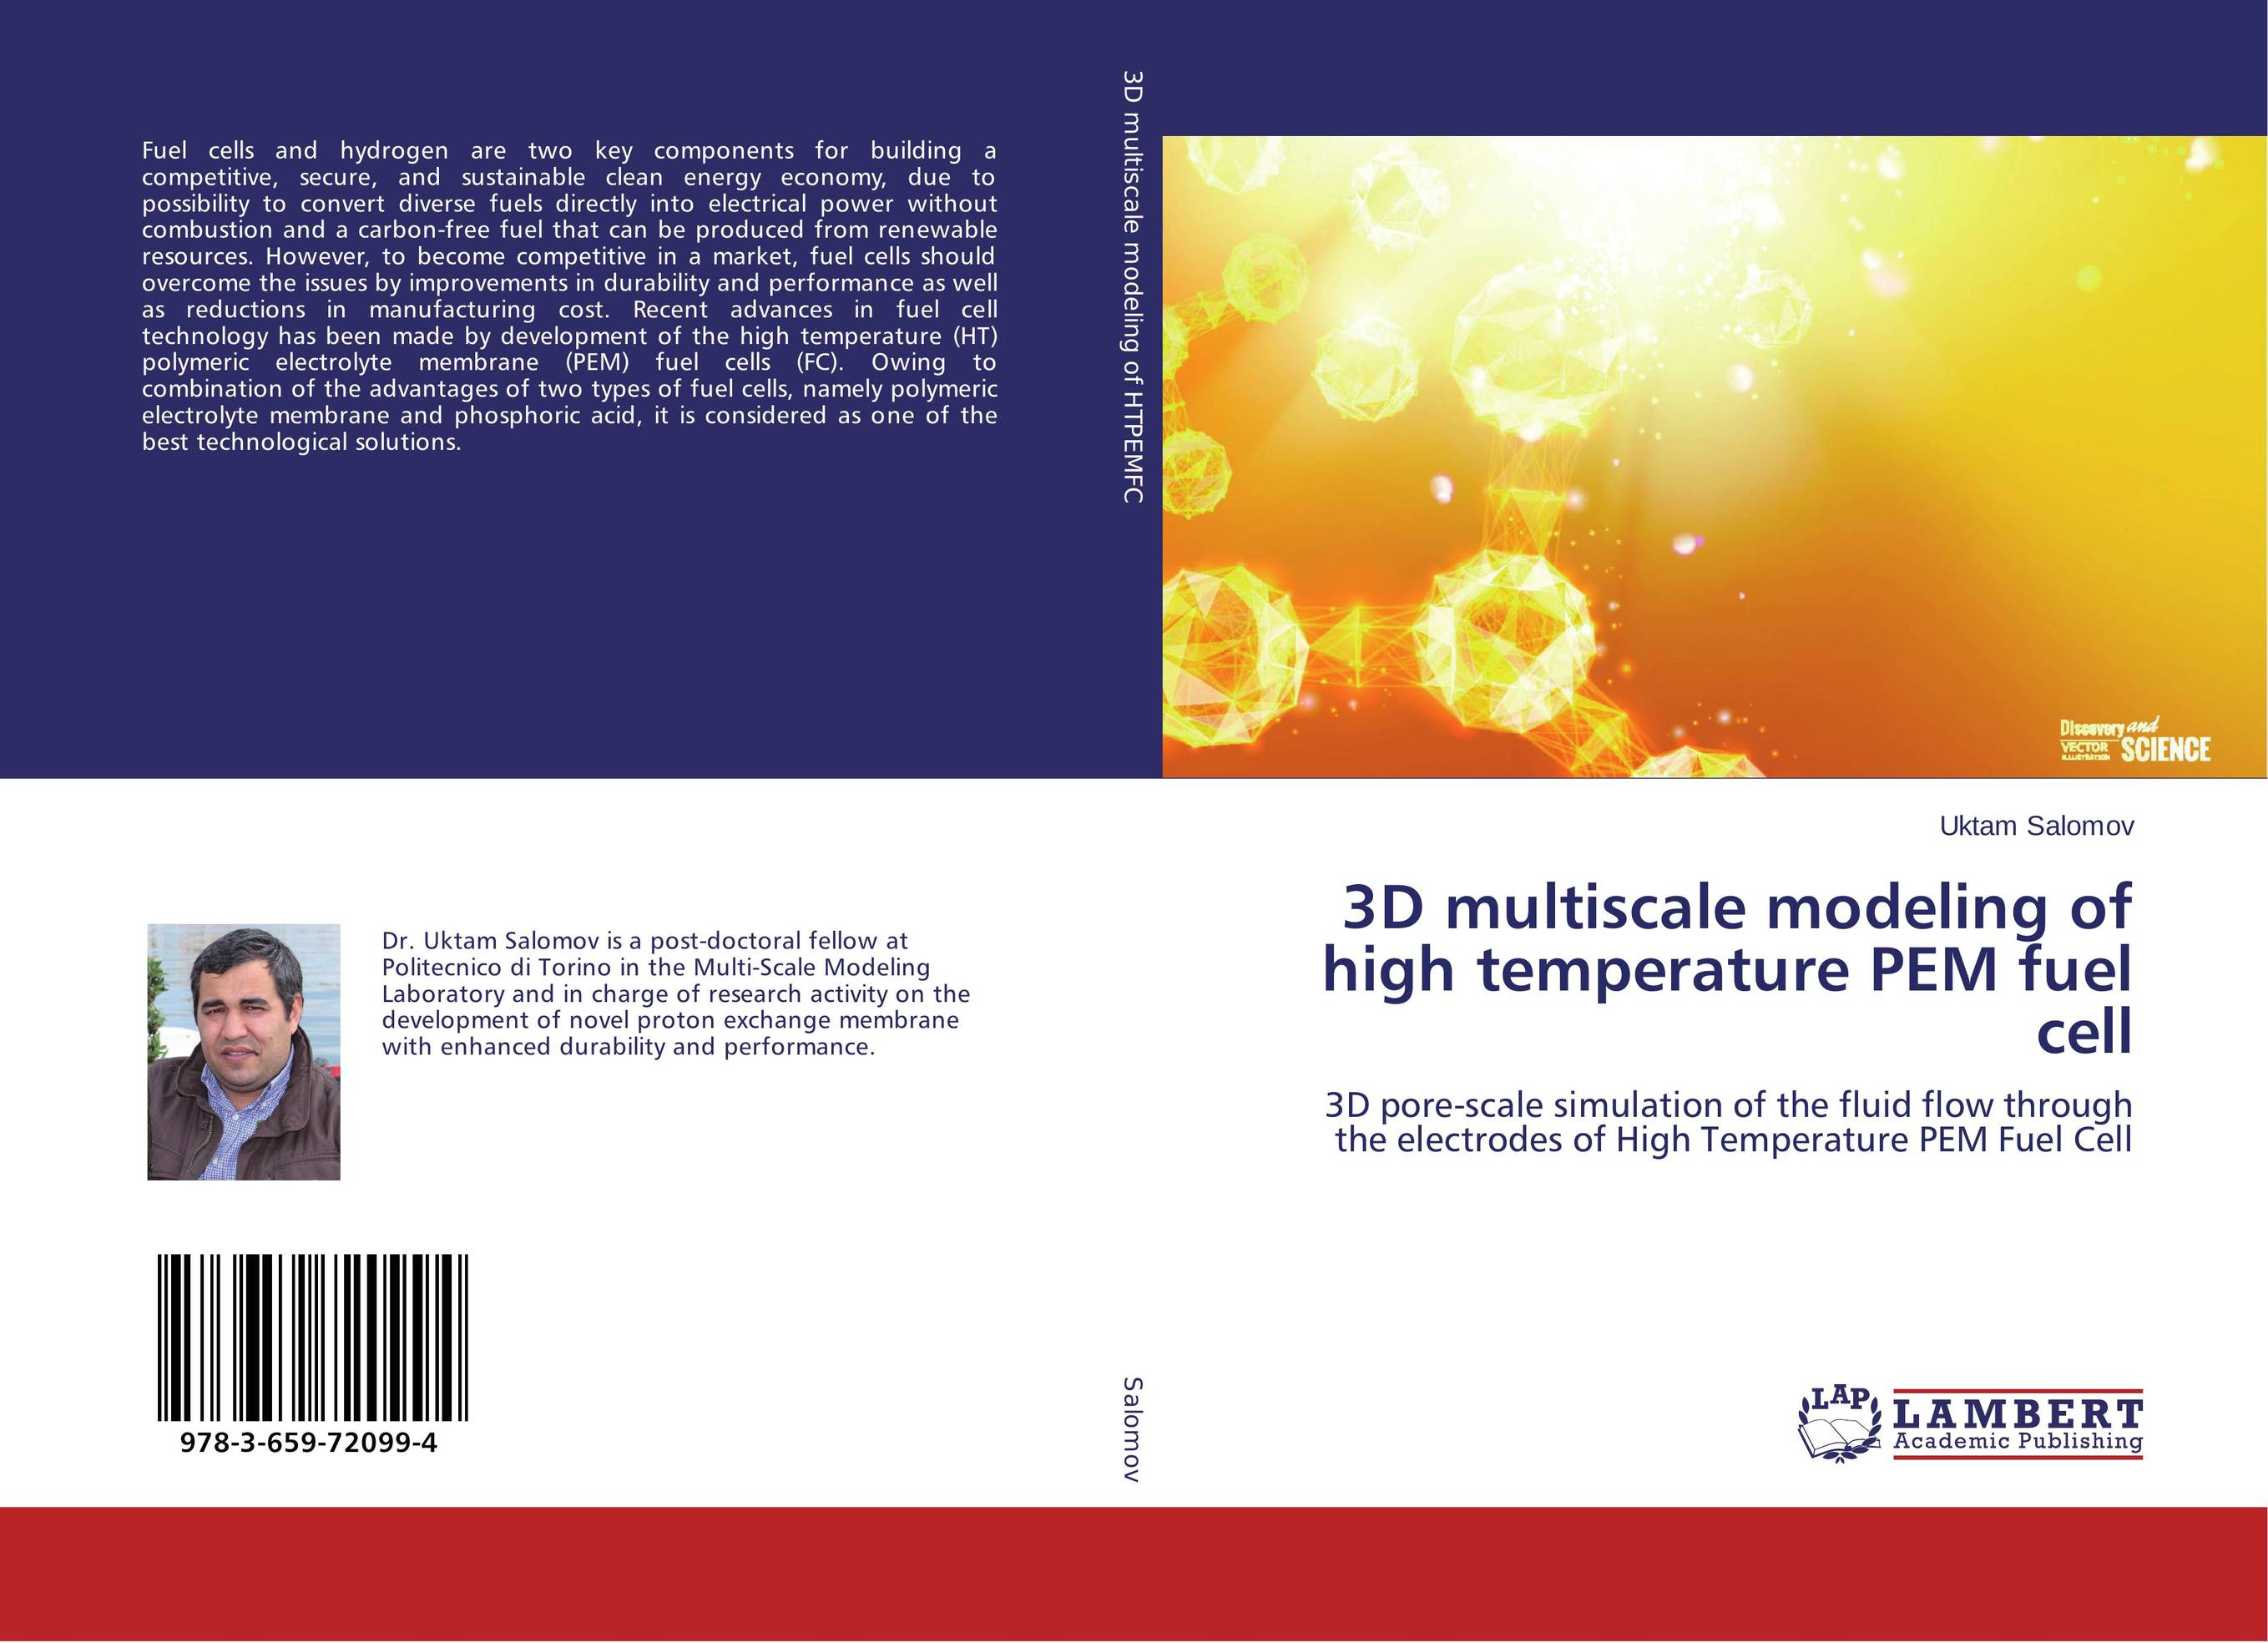 3D multiscale modeling of high temperature PEM fuel cell